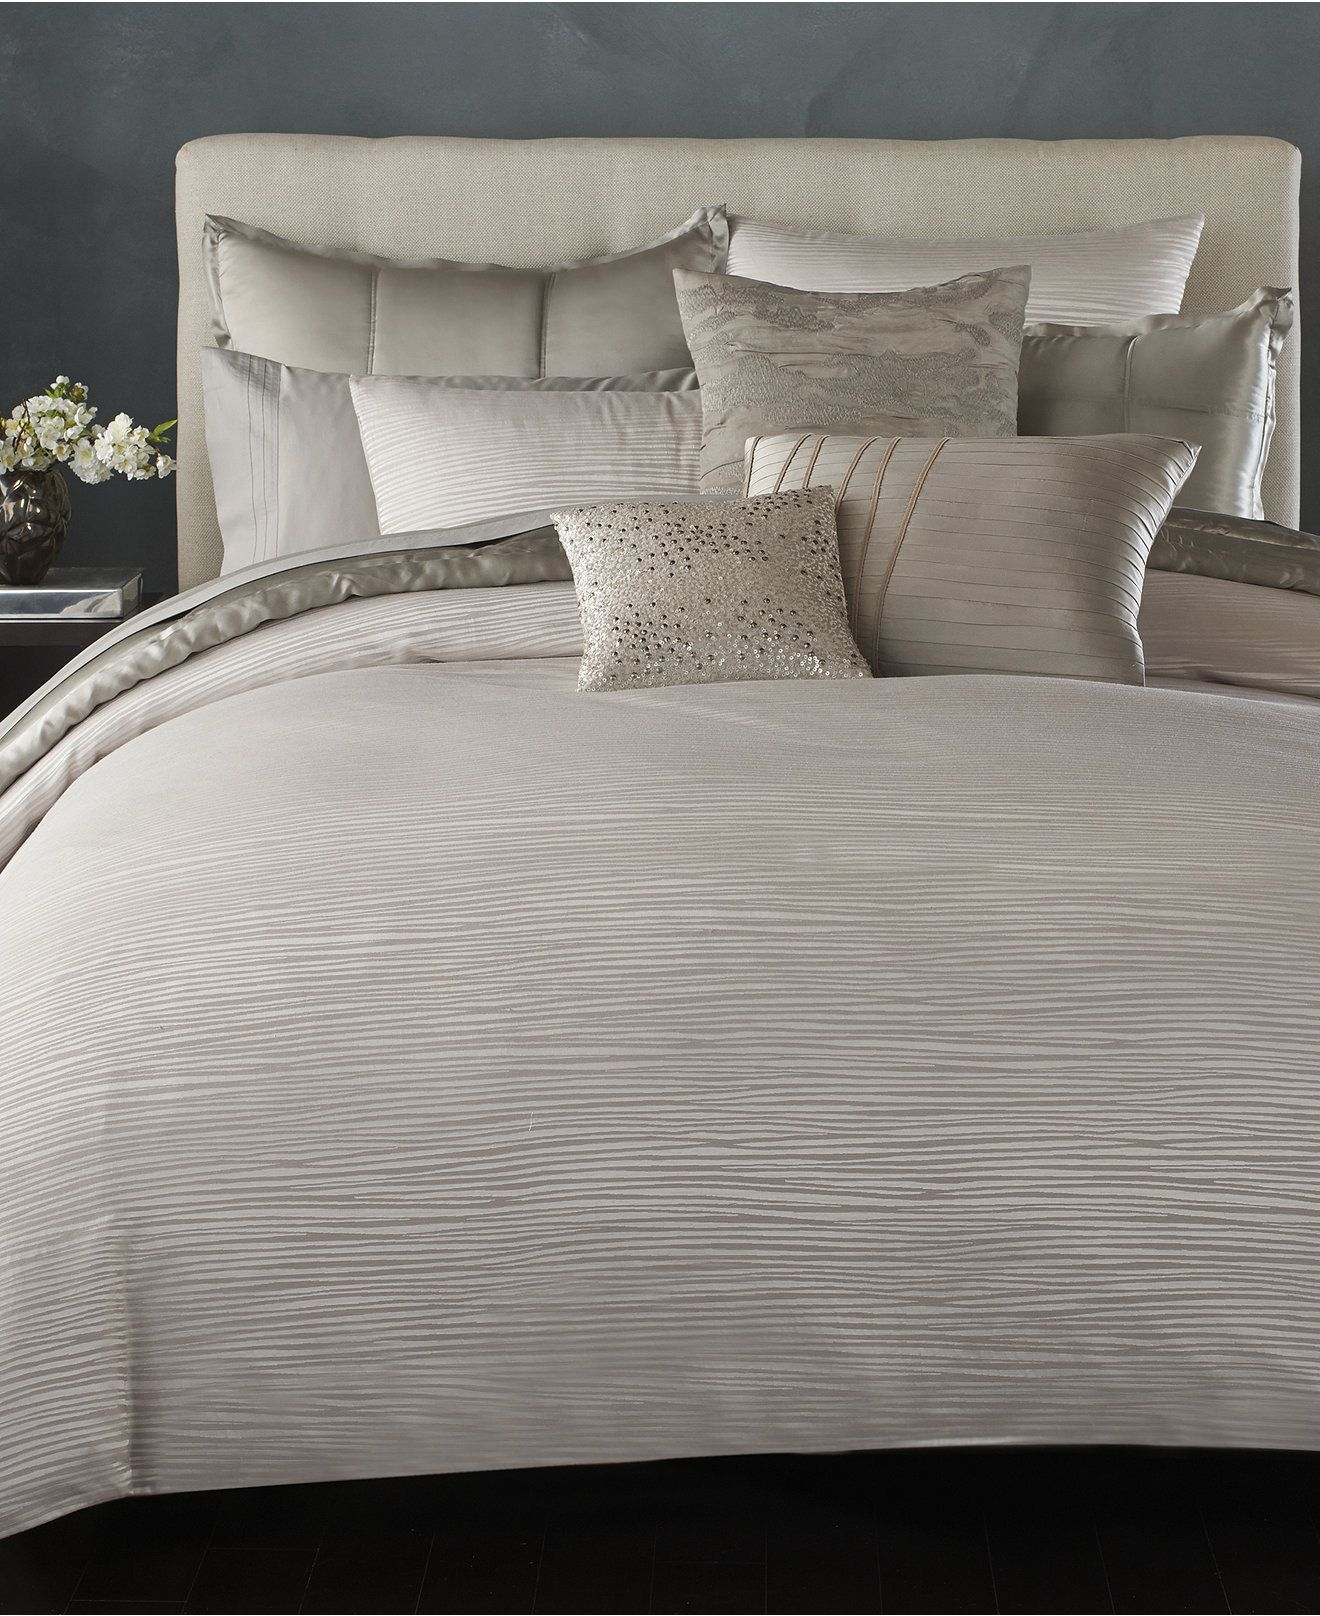 bed nordstrom design woodland cover set bedding luxury duvet new quilts of